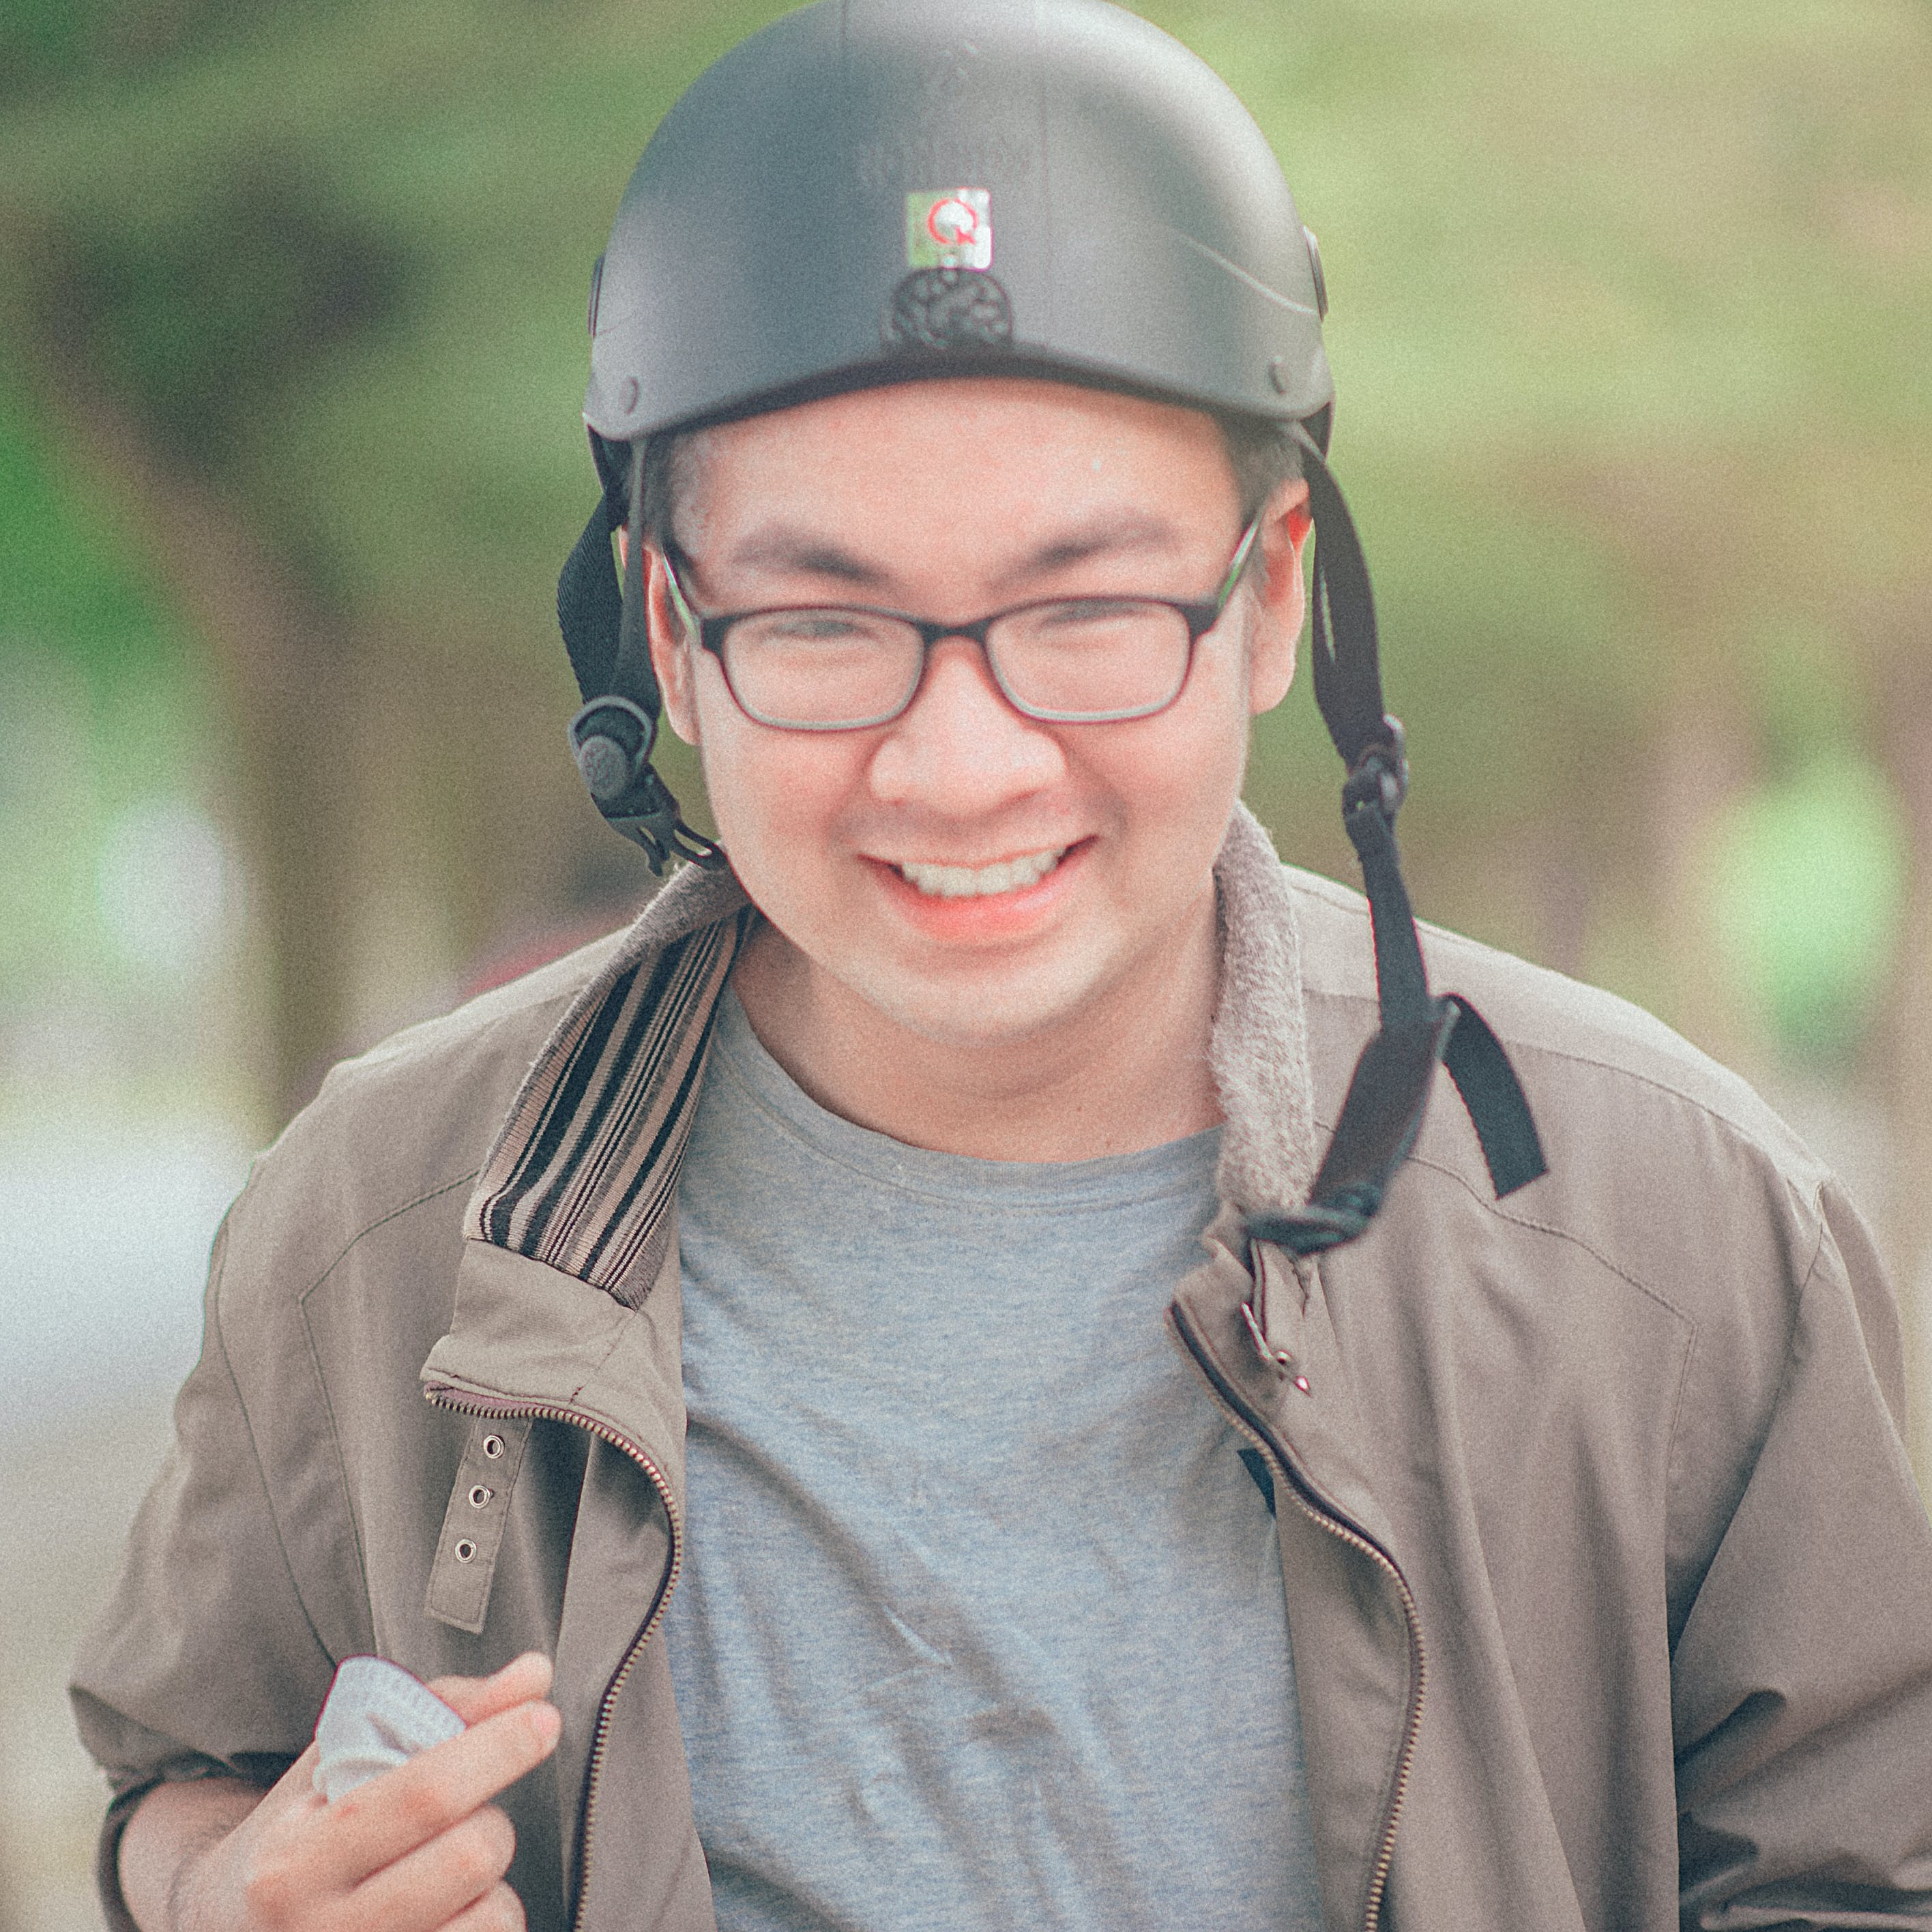 Man Wearing Black Helmet